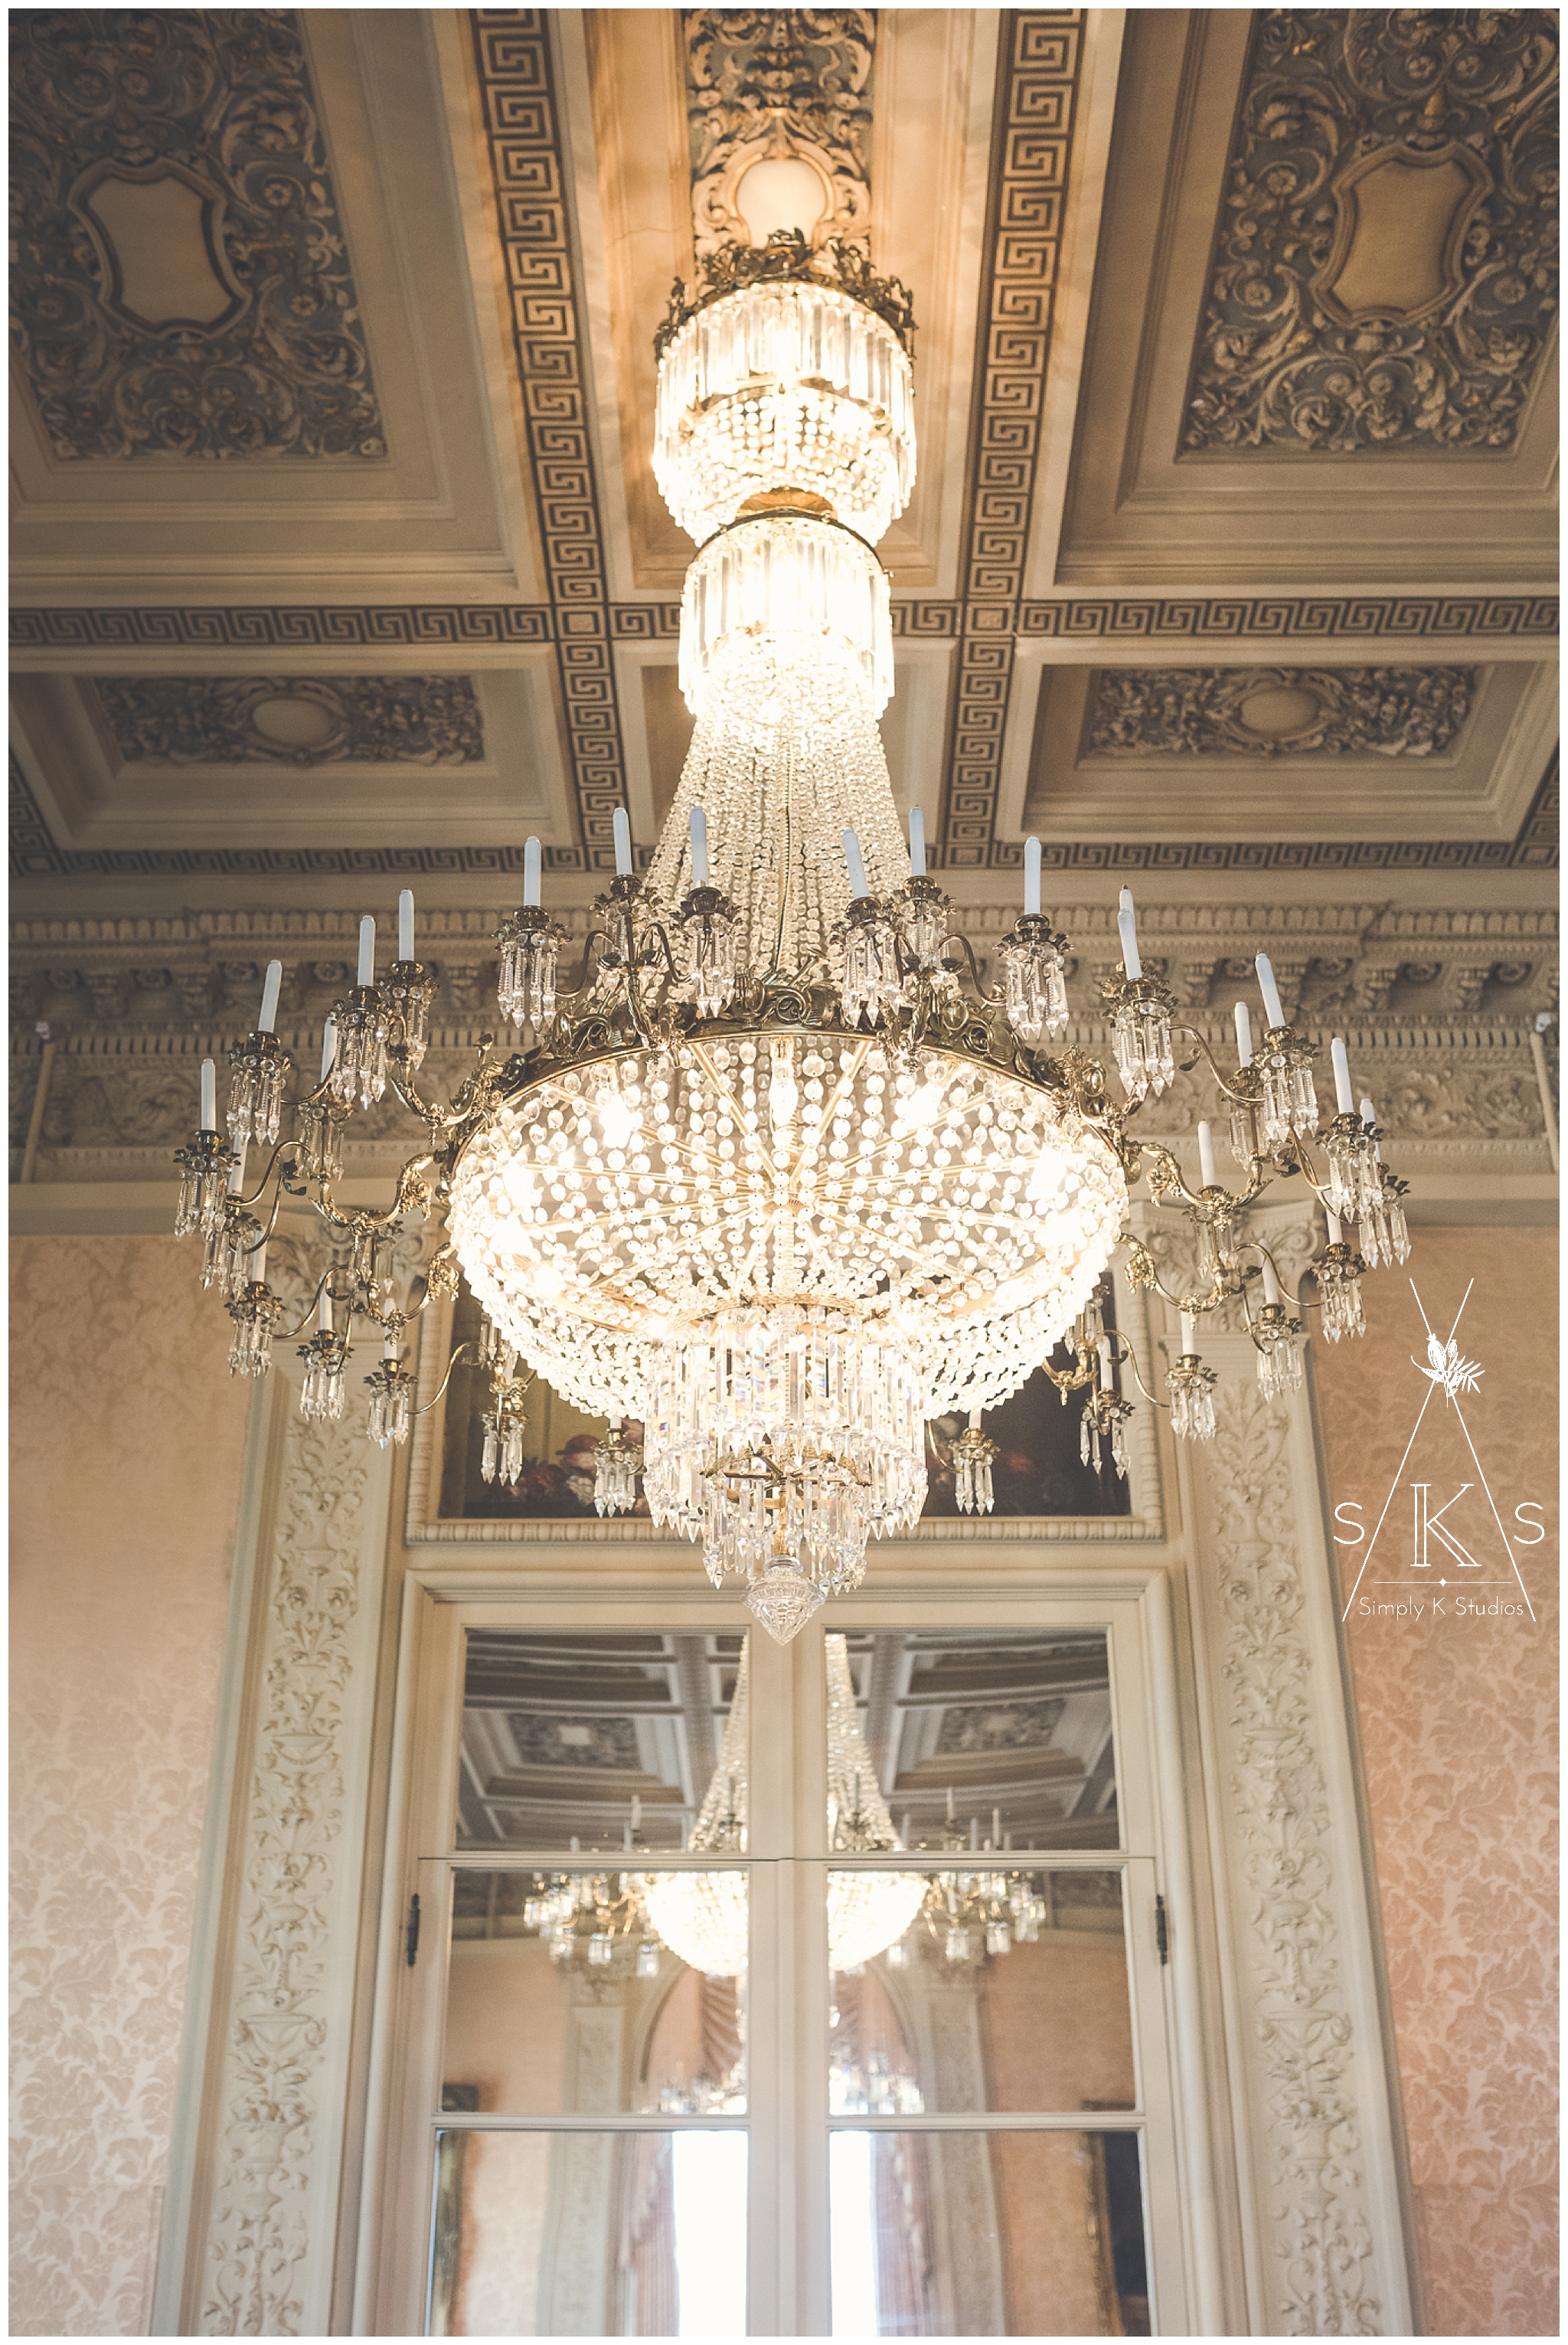 Chandeliers in Rosecliff Mansion